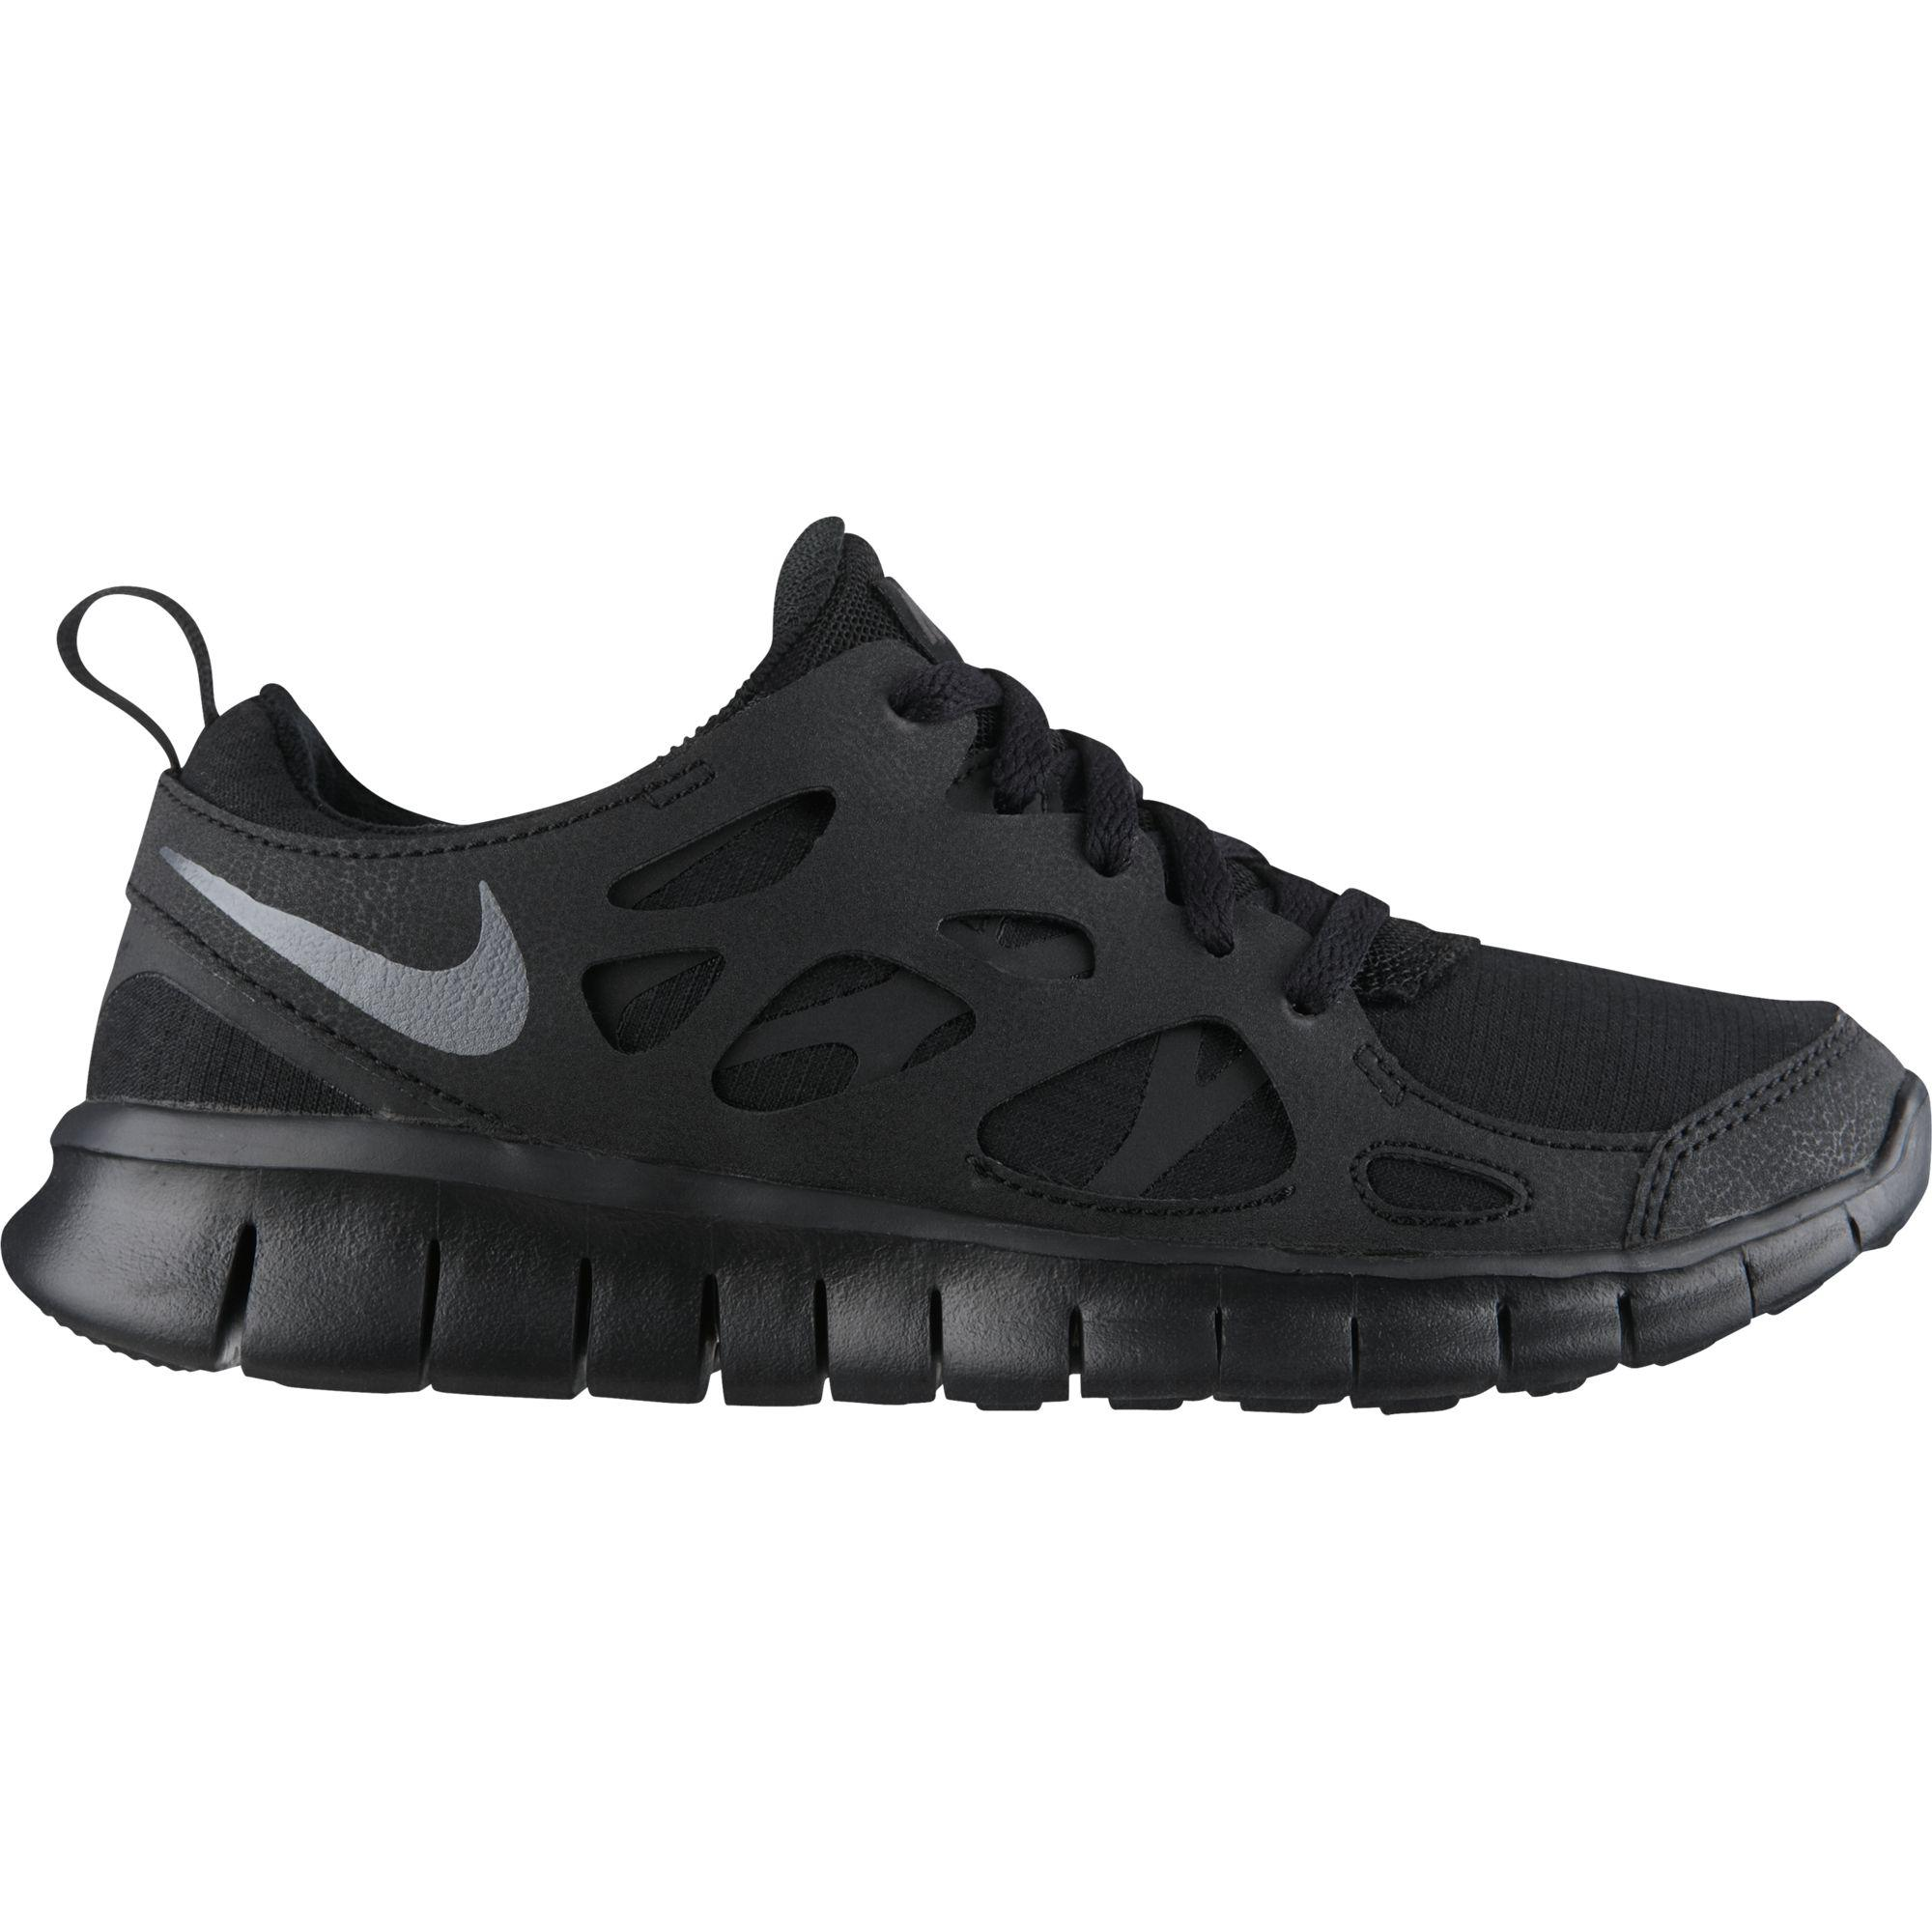 Nike Boys Free Run 2 Running Shoes - Black